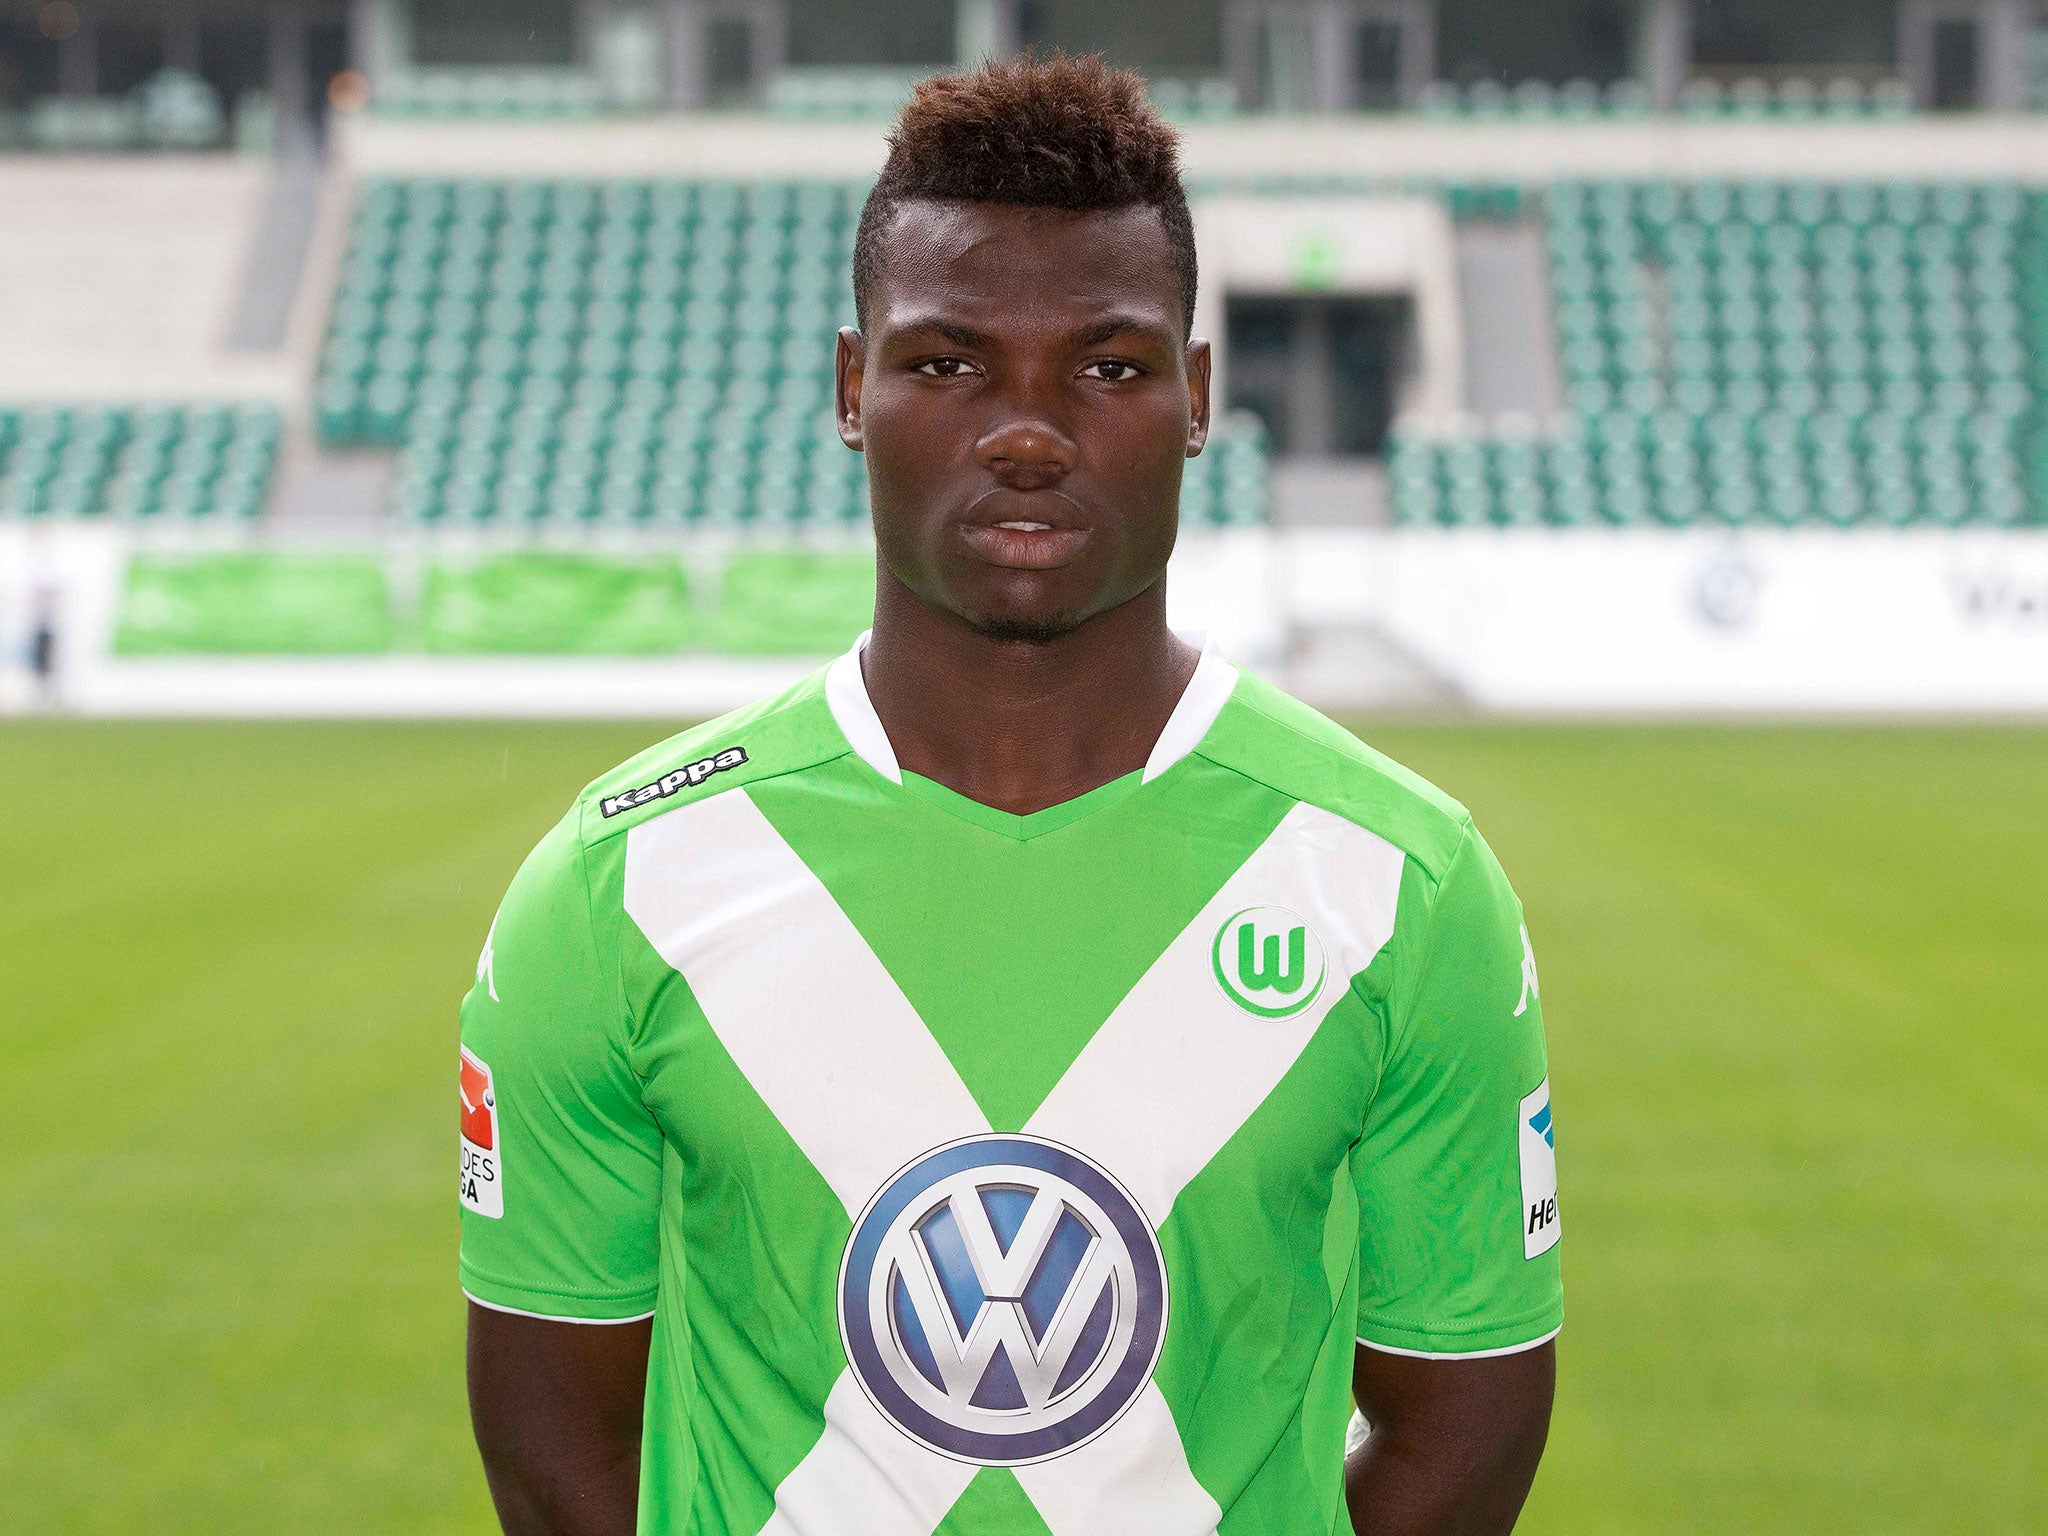 Junior Malanda/Photo: Wolfsburg